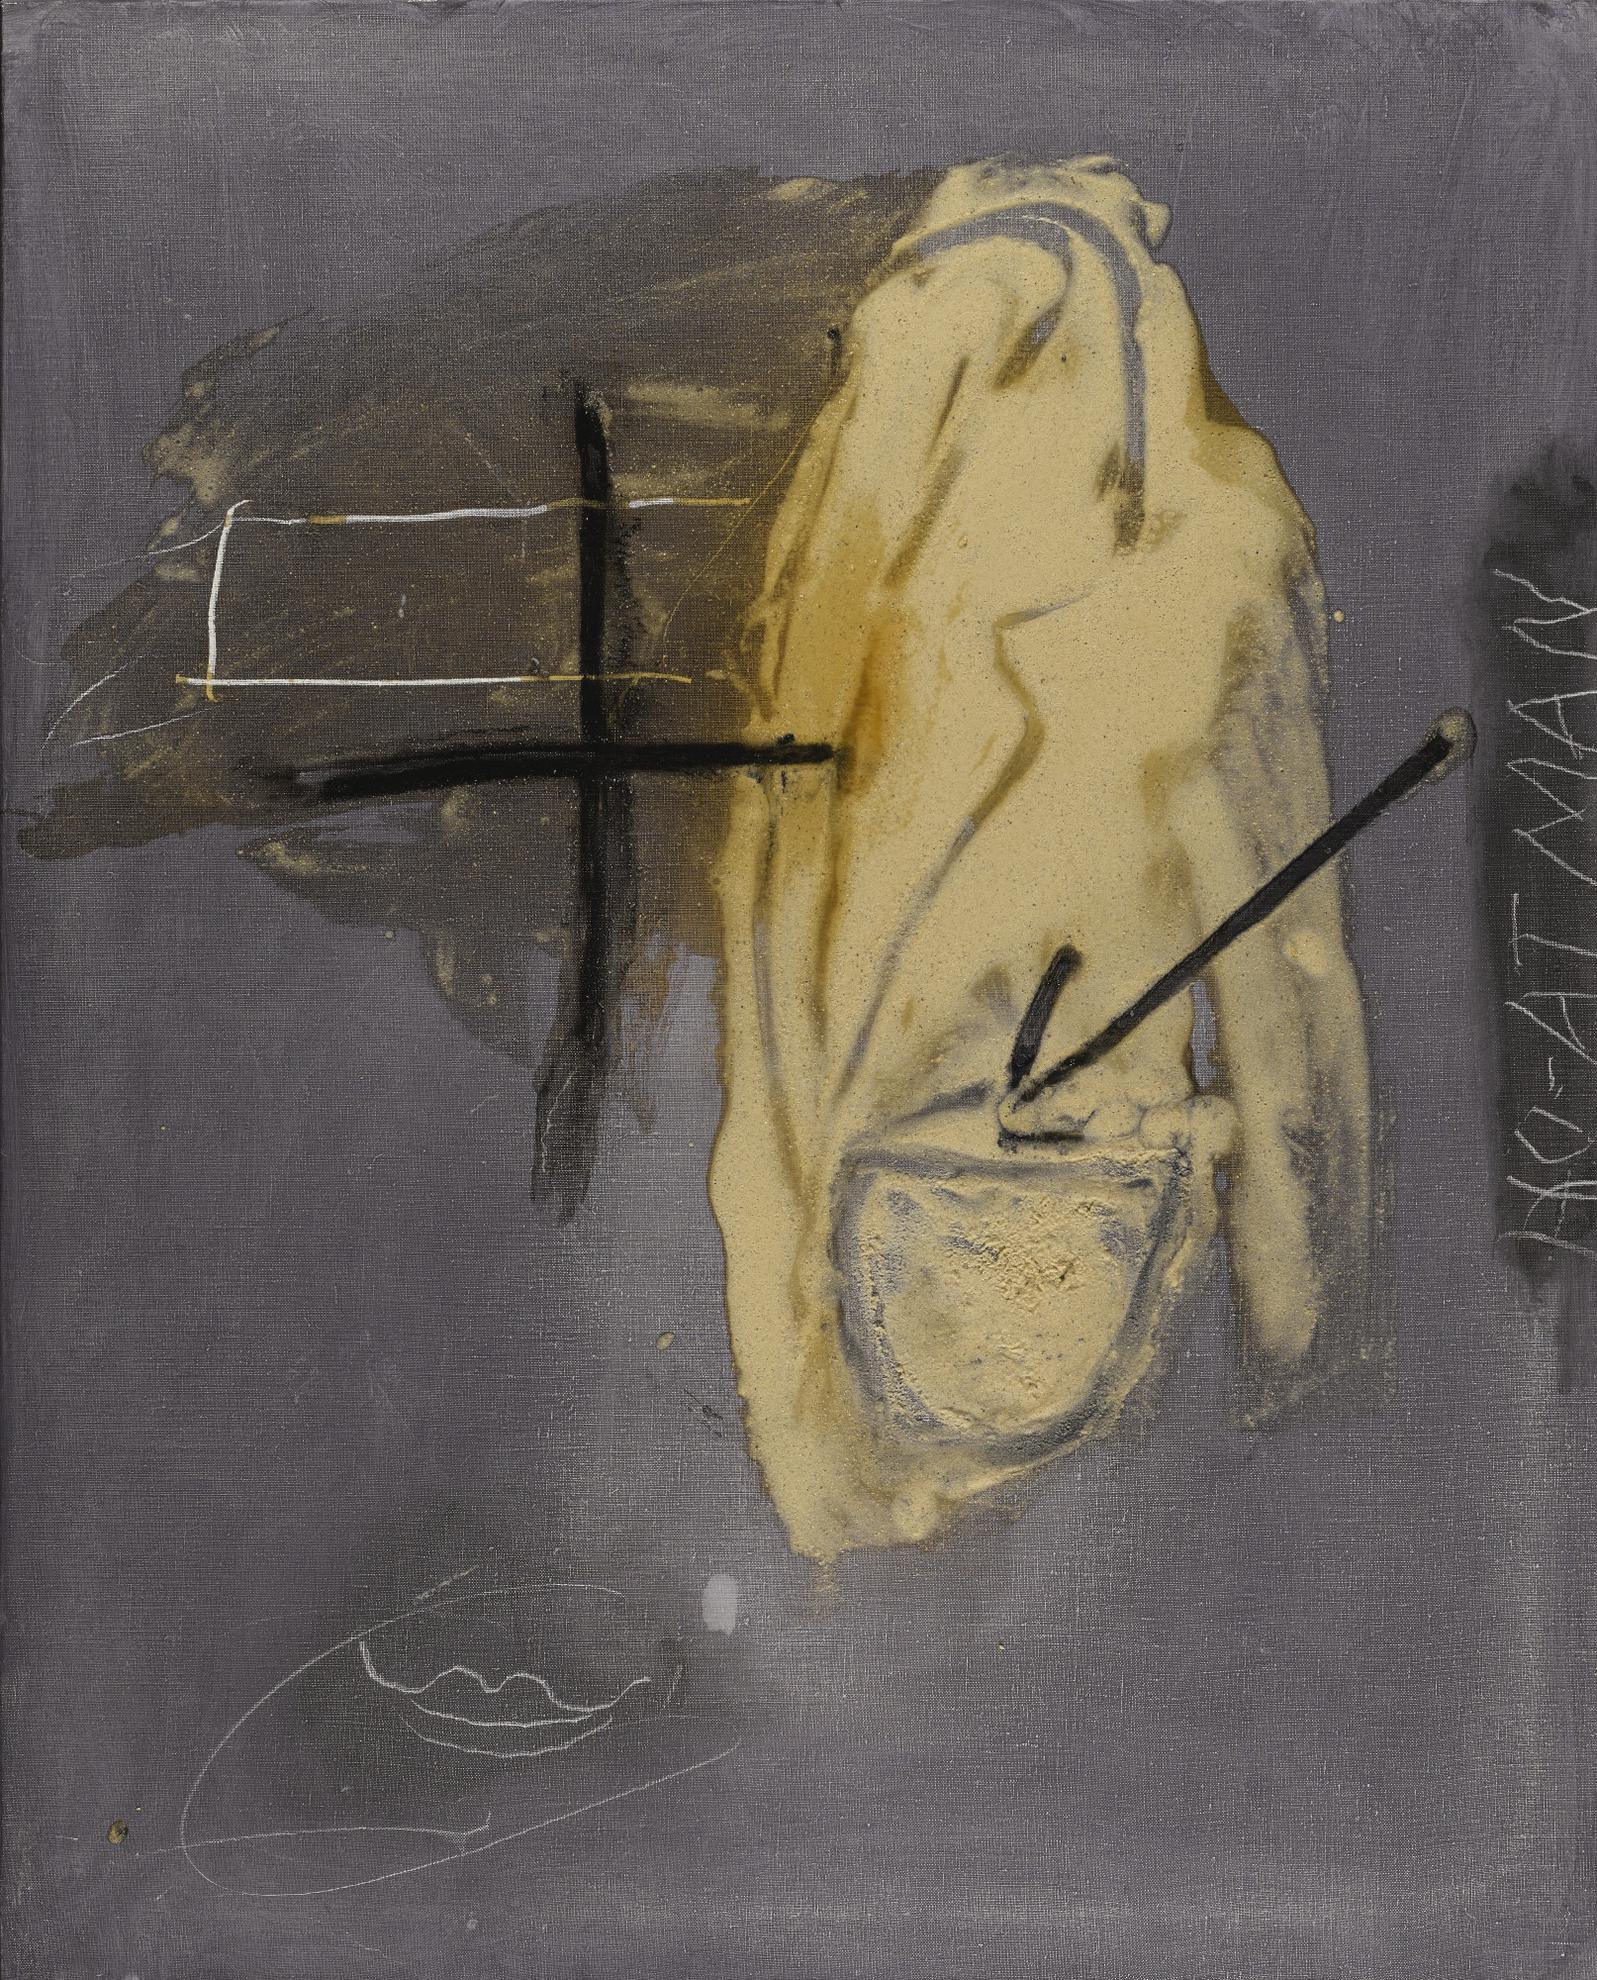 Antoni Tapies-No-Atman-2001